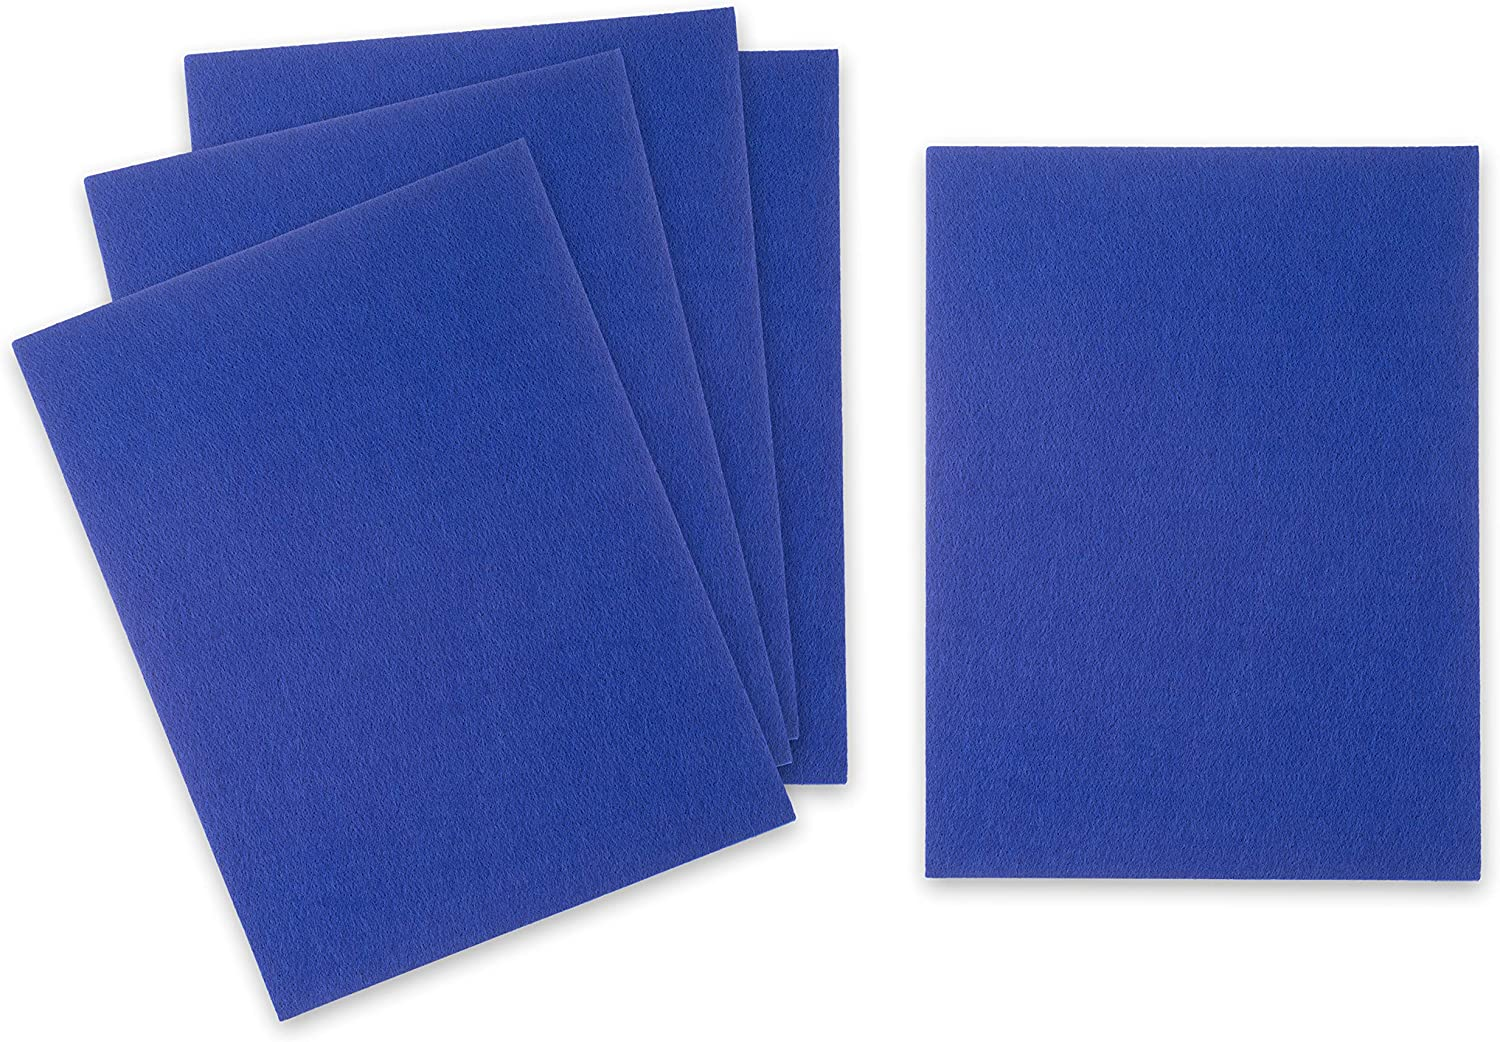 Hard Felt Pieces for Kids Art Projects 5 Pack Stiff Felt Sheets for Crafts Sewing 9x12 inches 3mm Thick Blue Craft Fabric Crafting